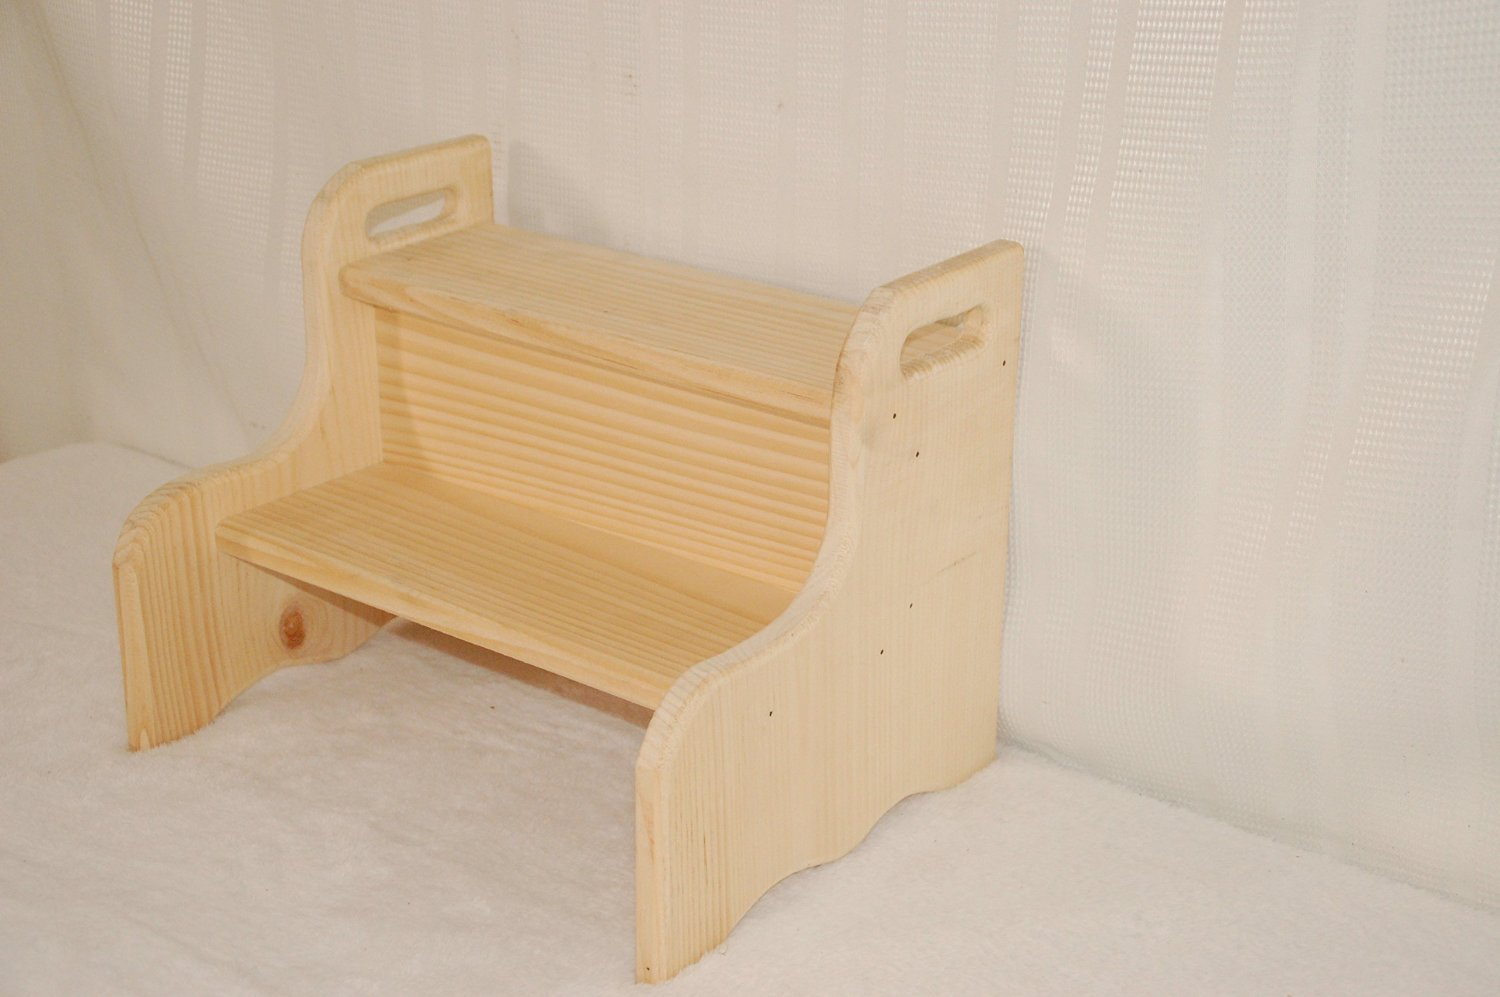 Unfinished Wooden Step Stool For Kids Thesteppingstool Com